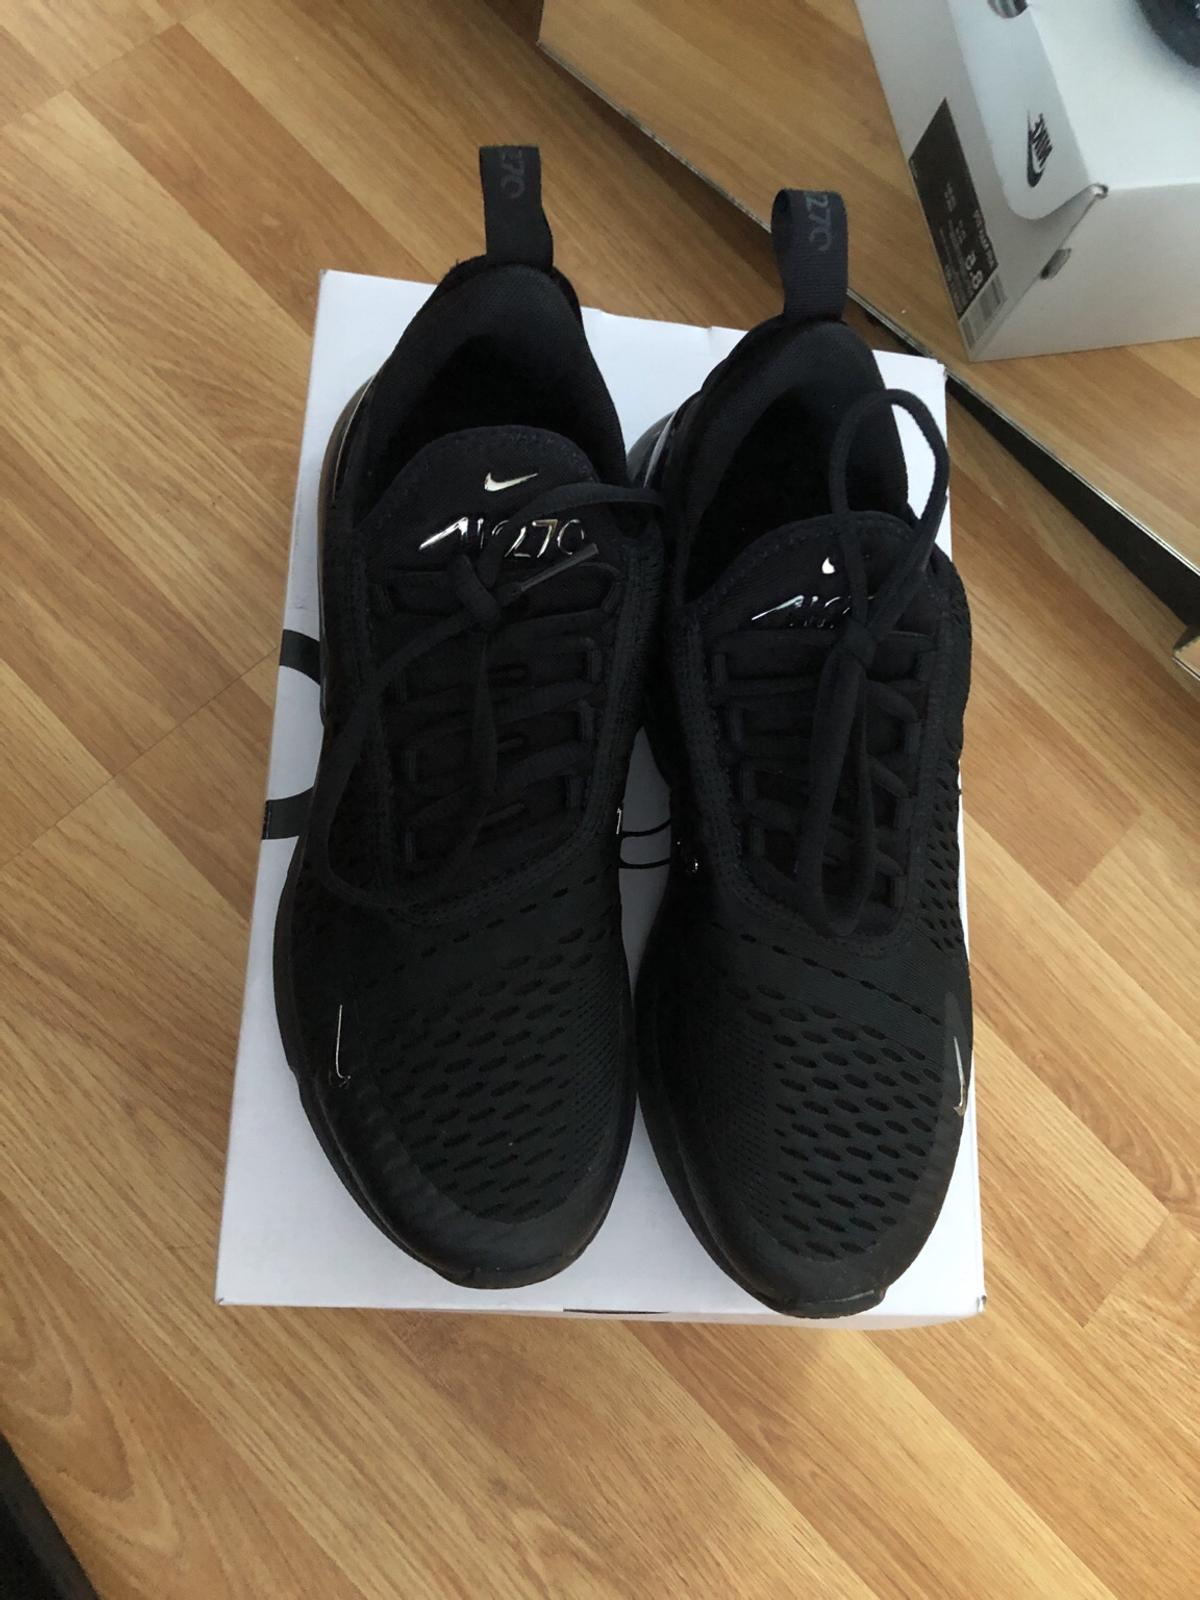 new arrival d27e2 b4427 Nike air max 270s (authentic) 7.5 in BR1 Lewisham for £80.00 ...